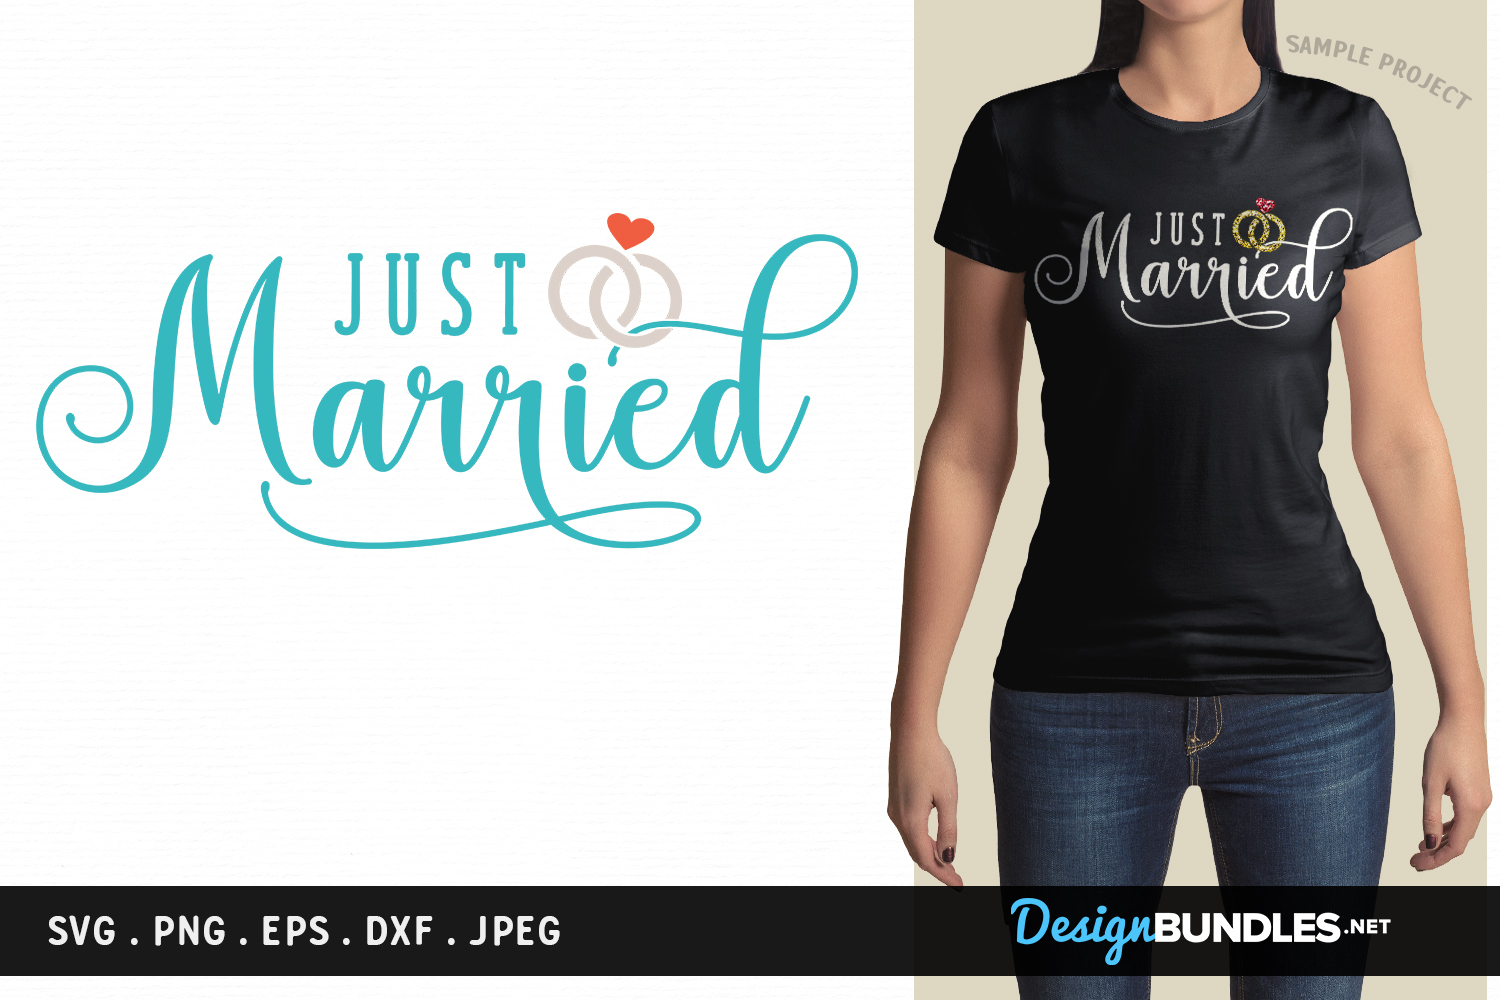 Just Married - svg cut file, printable example image 1